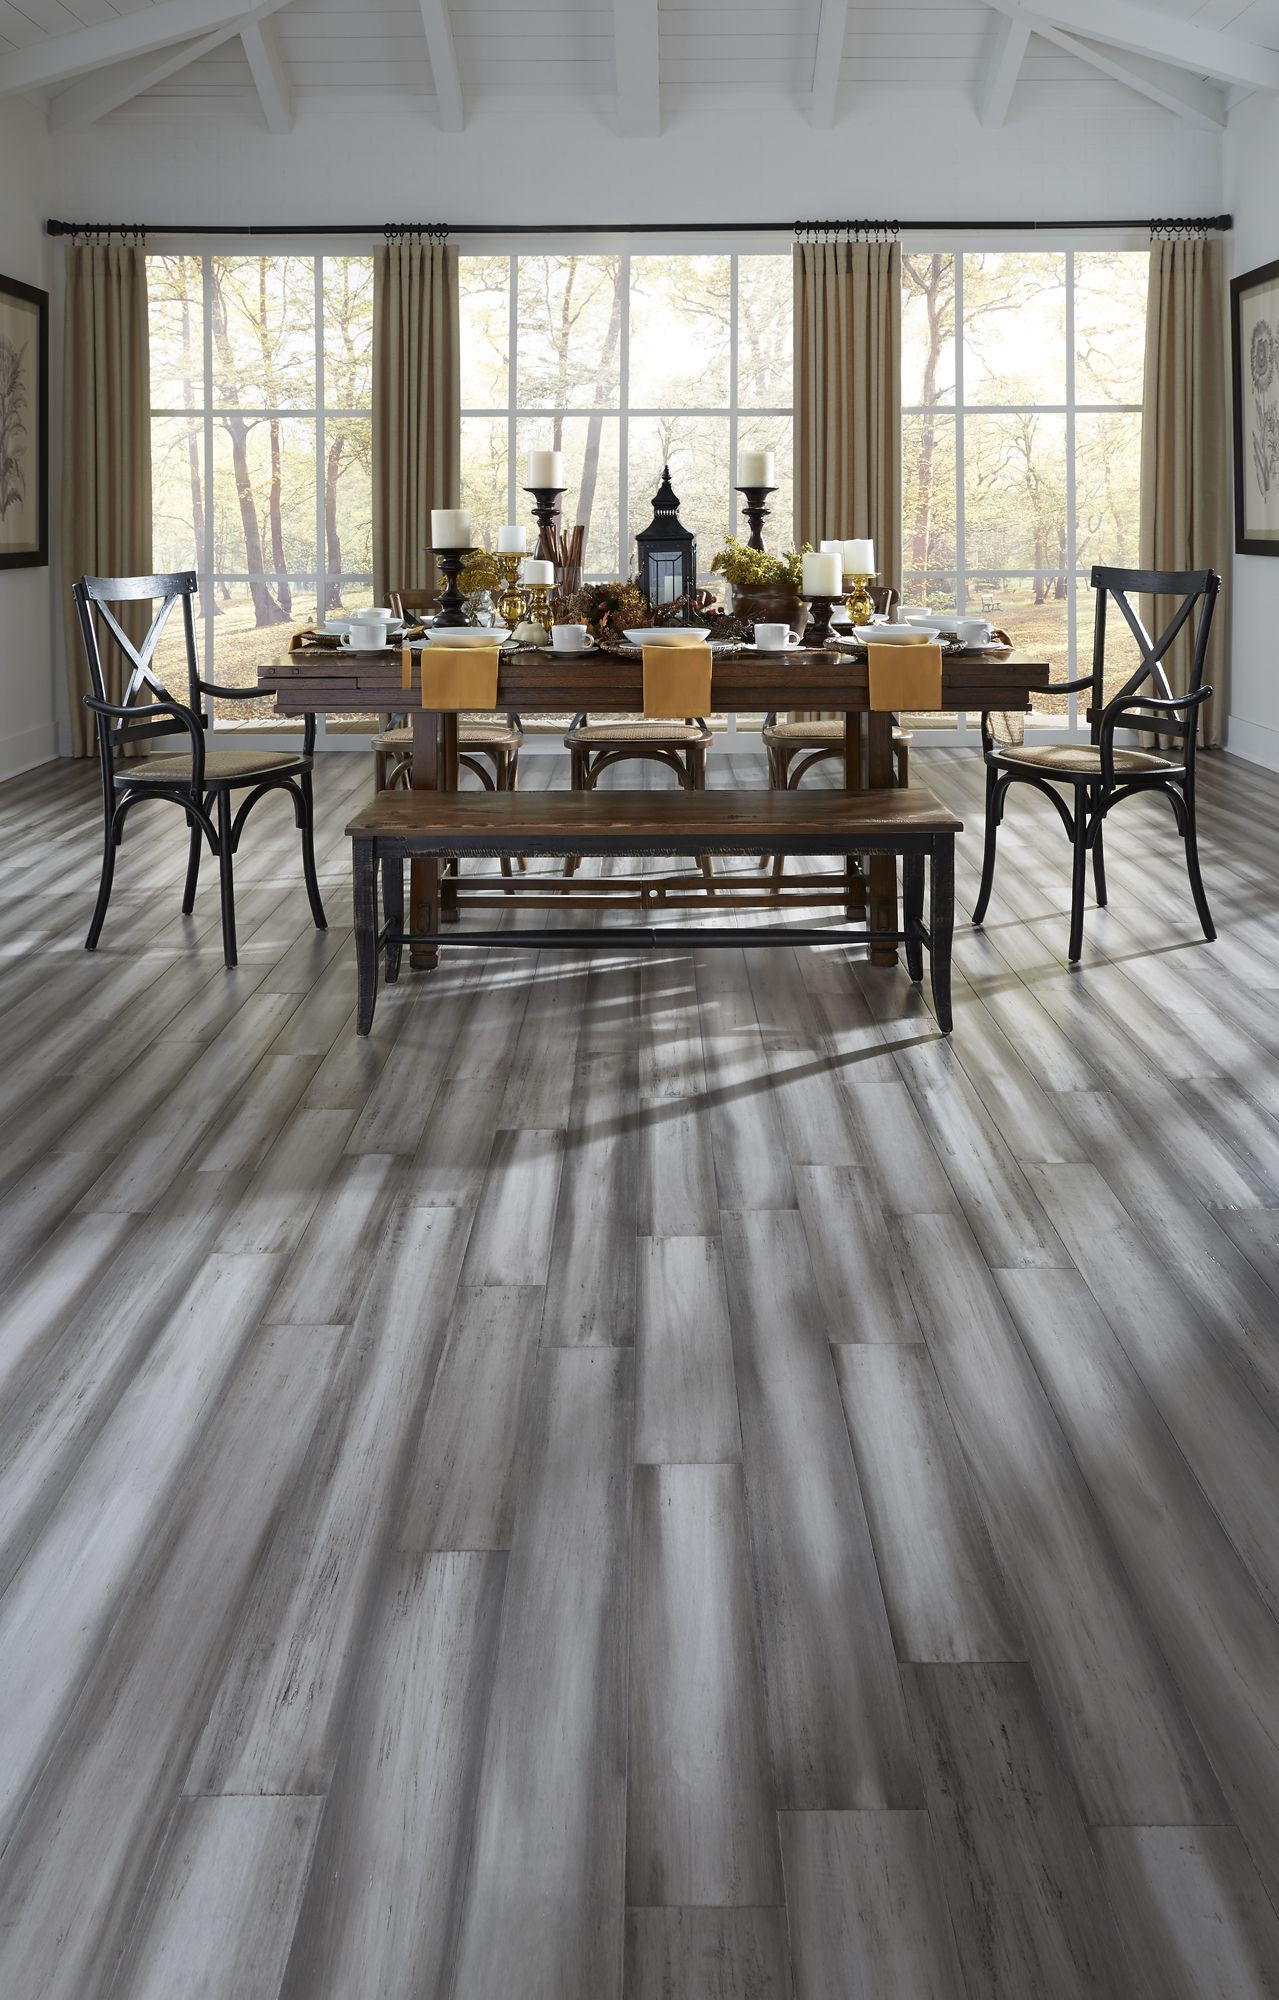 Is Bamboo Hardwood Flooring Good Of Modern Design and Rustic Texture Pair Perfectly with the Stately for Pair Perfectly with the Stately Blend Of Light and Dark Gray Shades to Offer Instant Charm In Silver Stone Distressed Bamboo This Hand Painted Floor